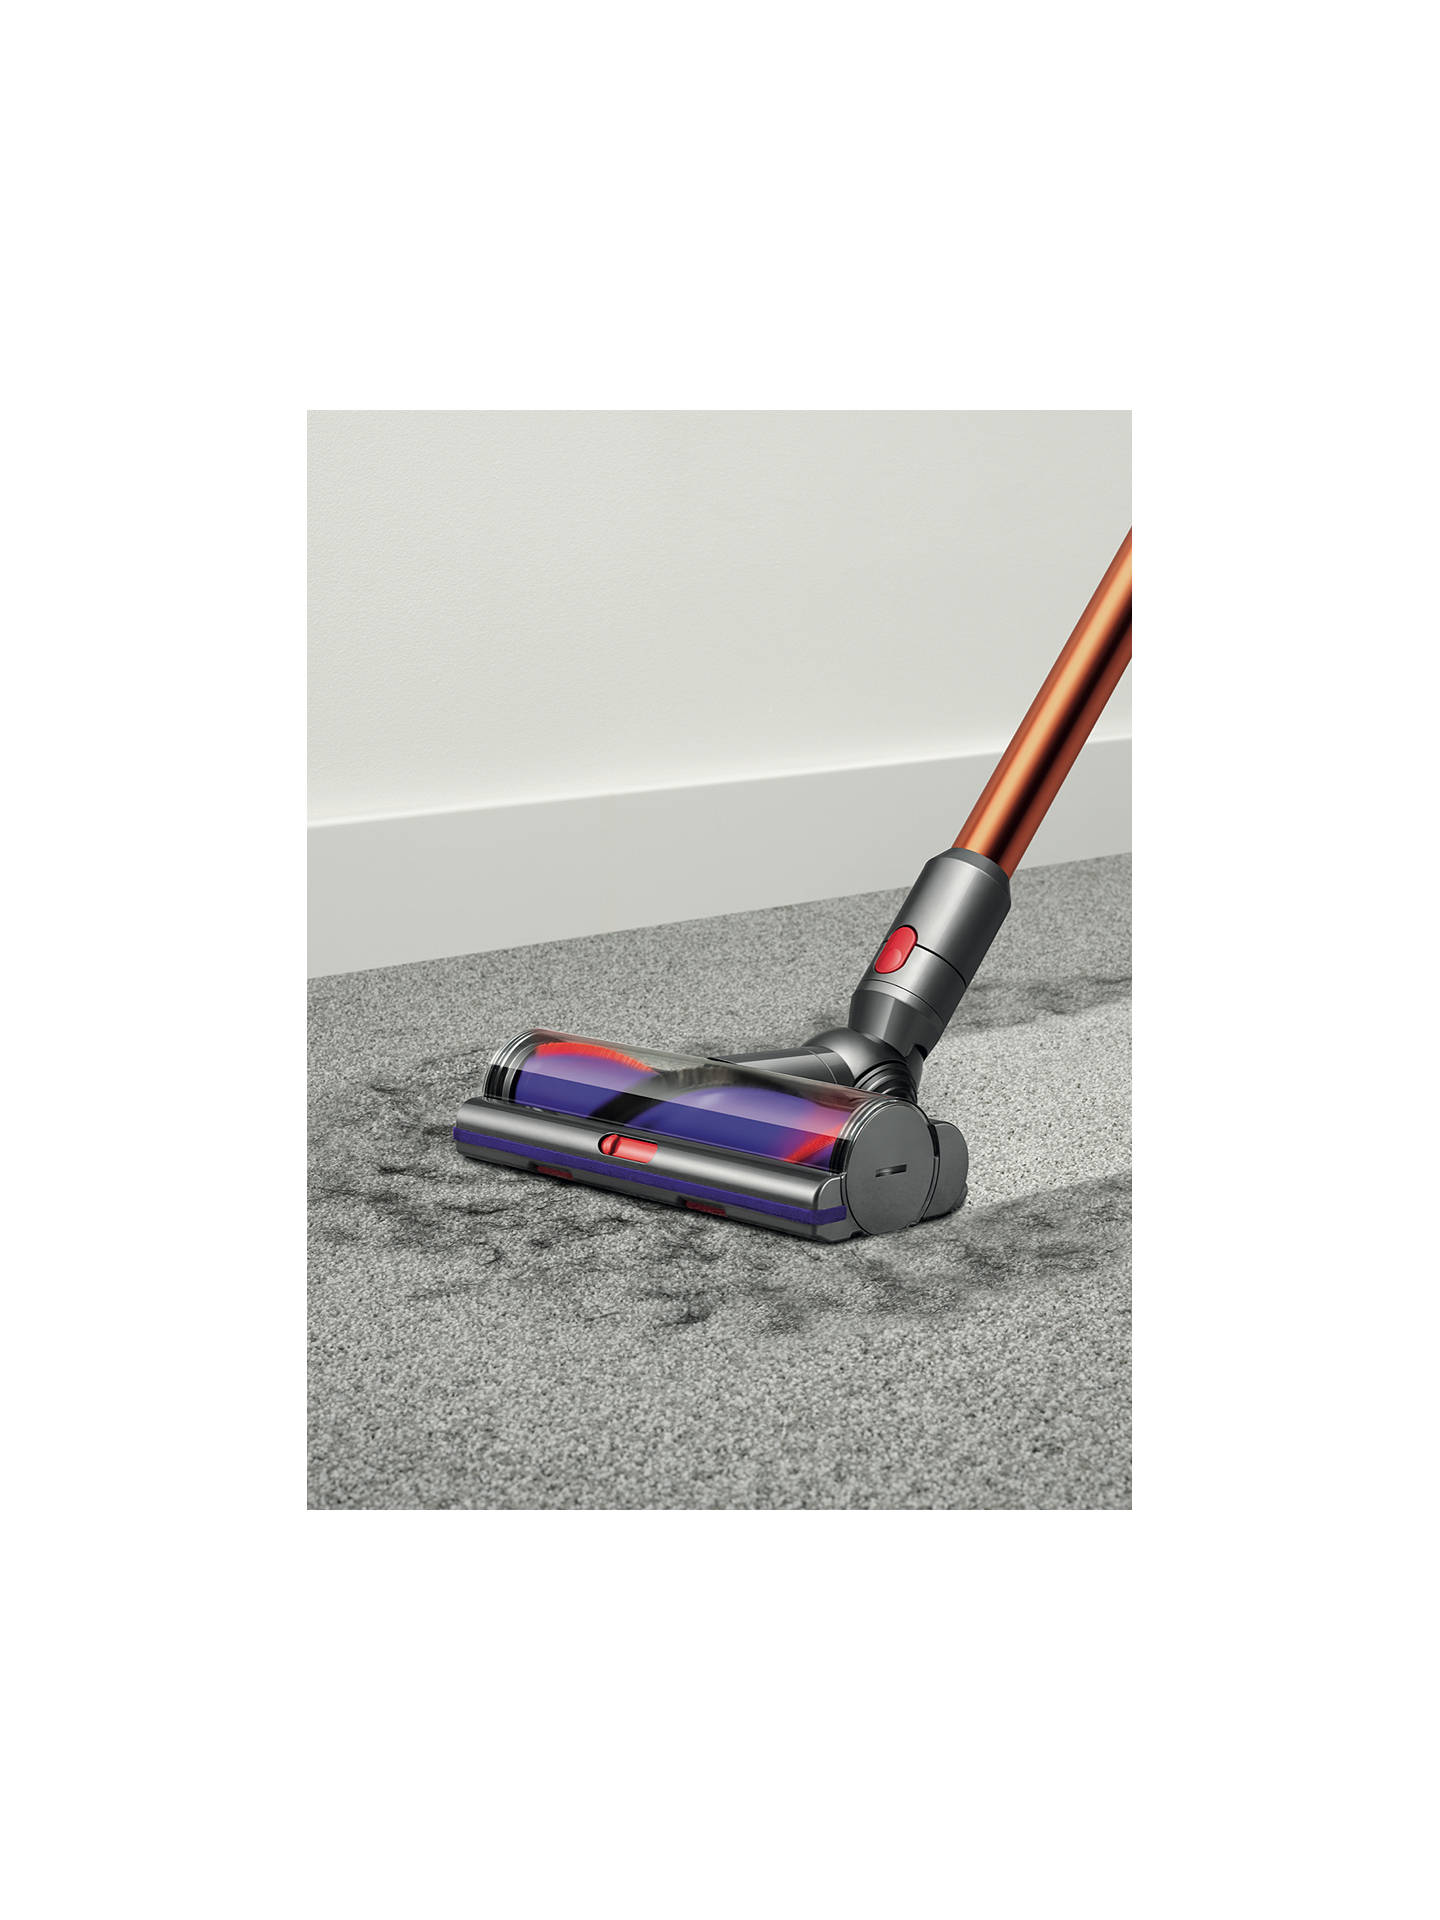 Dyson Cyclone V10 Absolute Cordless Vacuum Cleaner, Gold